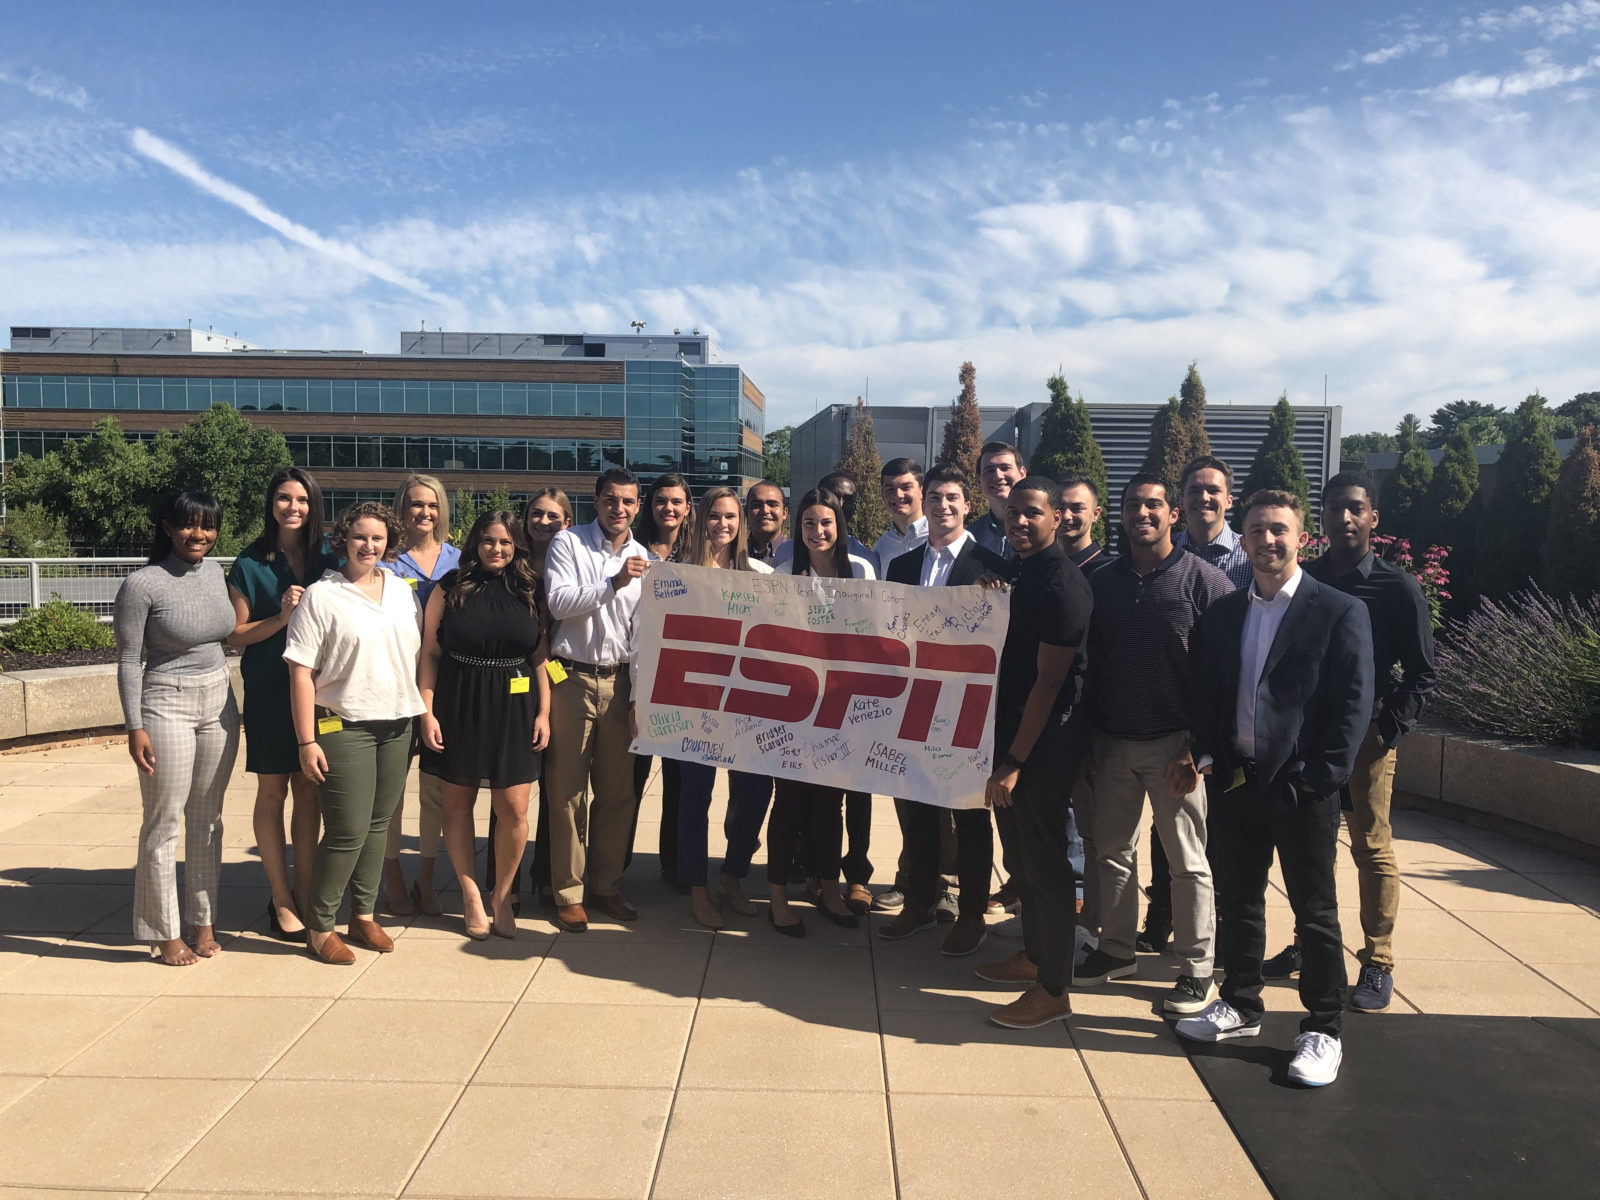 First Class of production assistants for ESPN Next